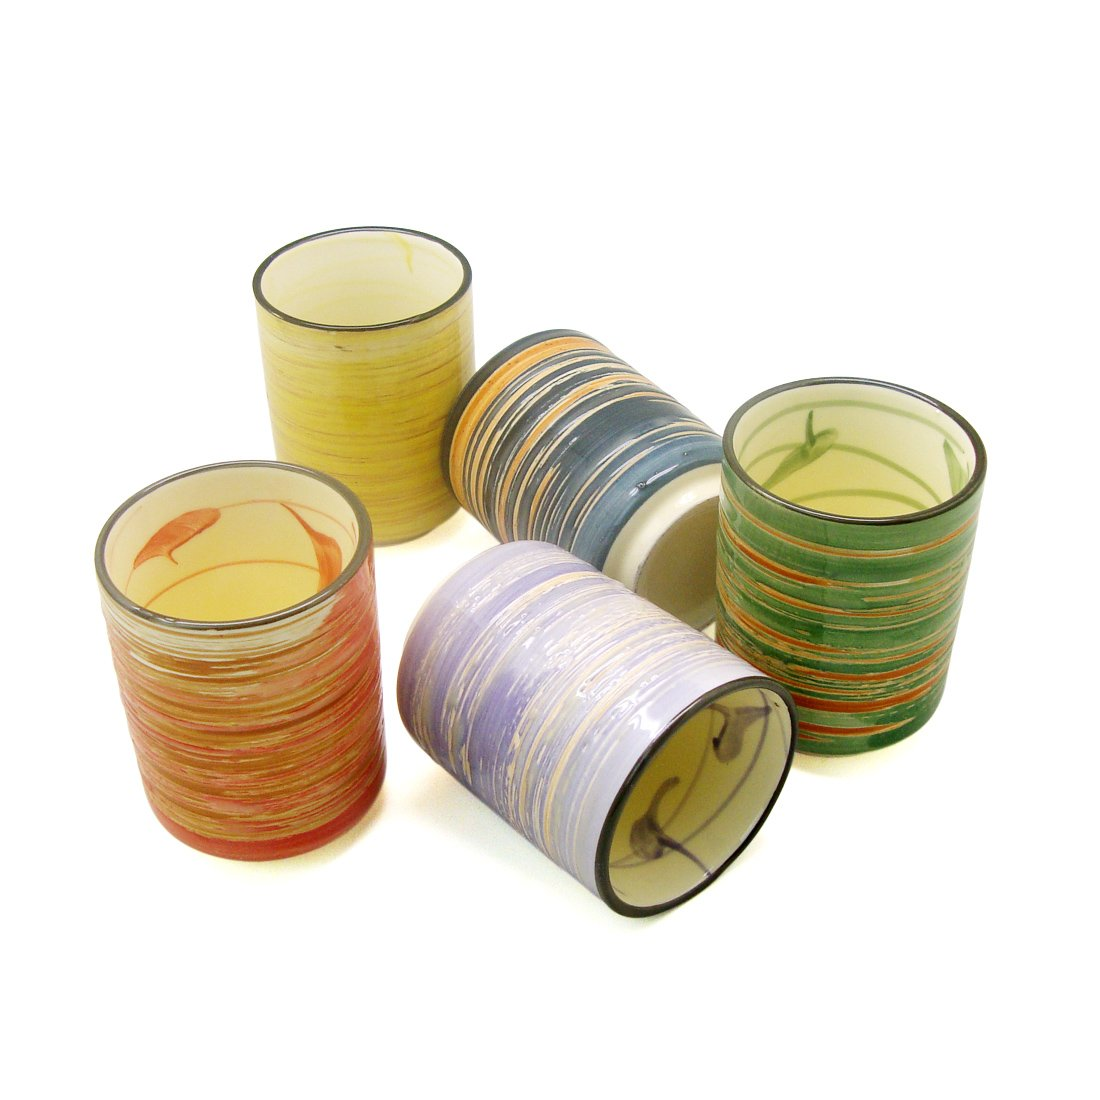 Ziiyan Set of 5 Traditional Colour Stripesl Designs Japanese Tea Cup, 7oz